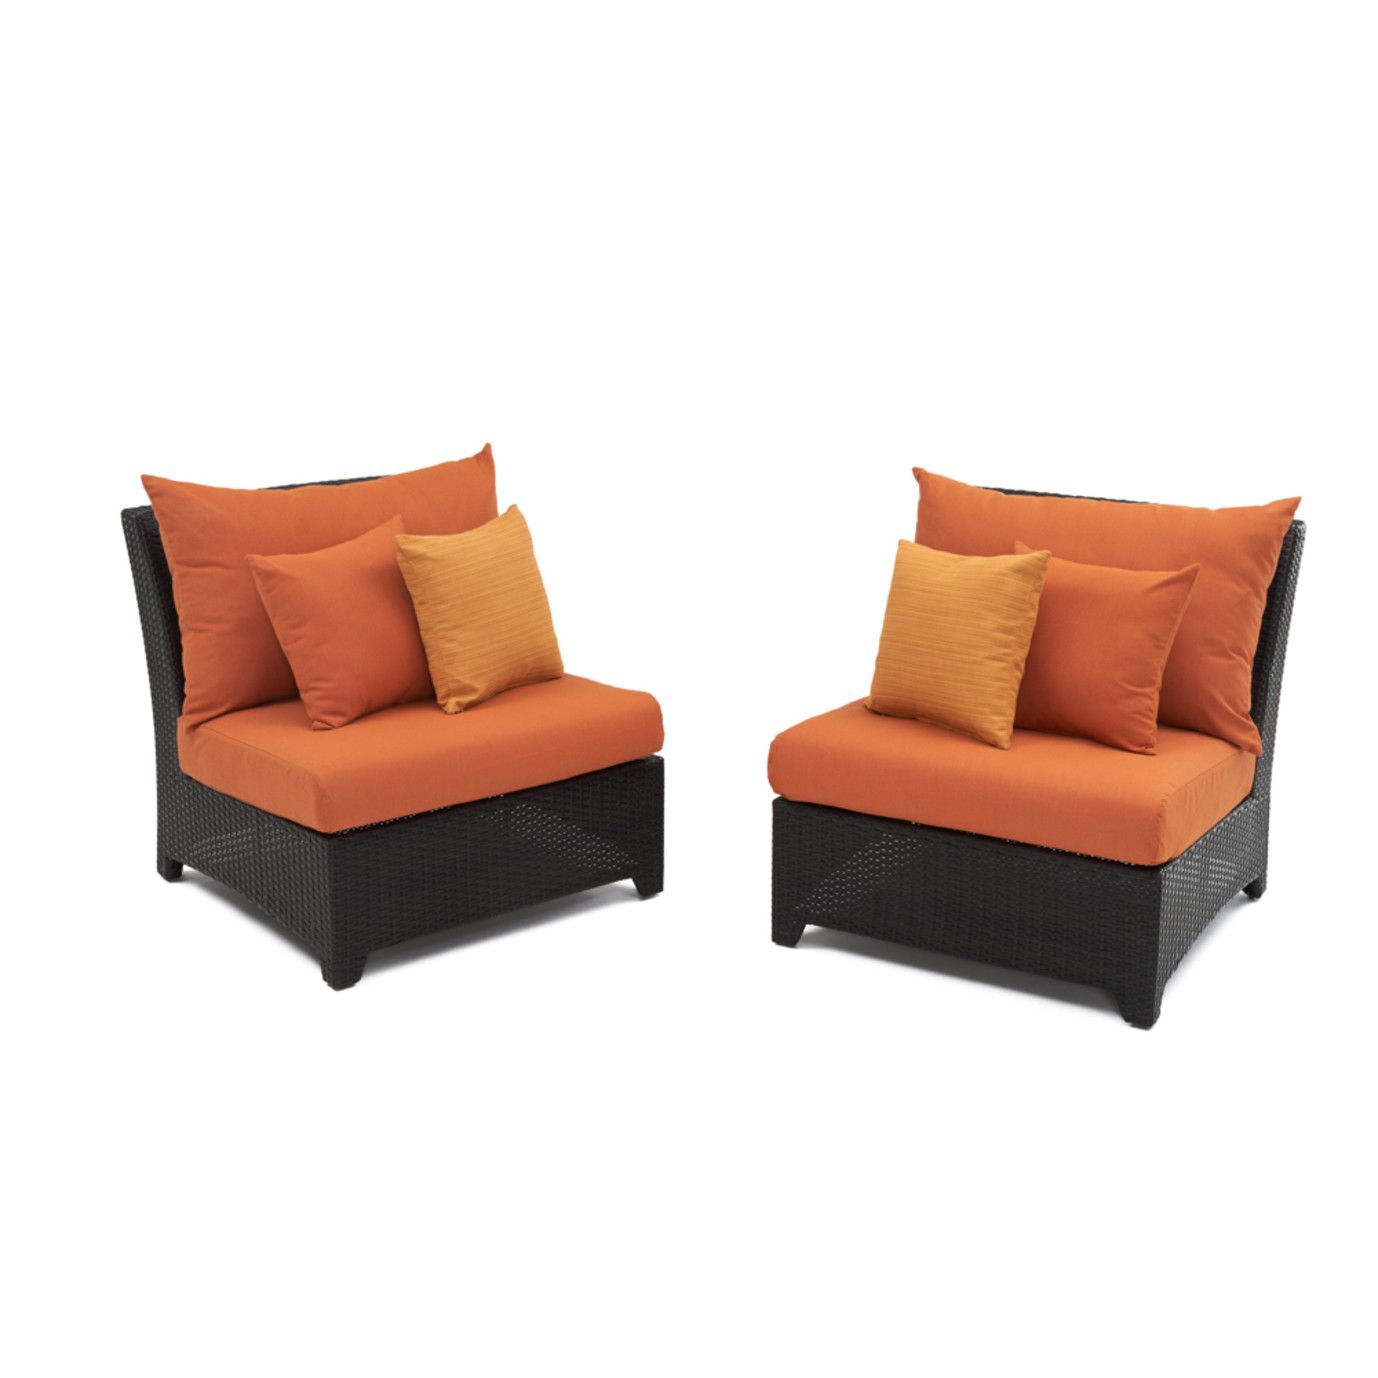 Deco™ Armless Chairs - Tikka Orange